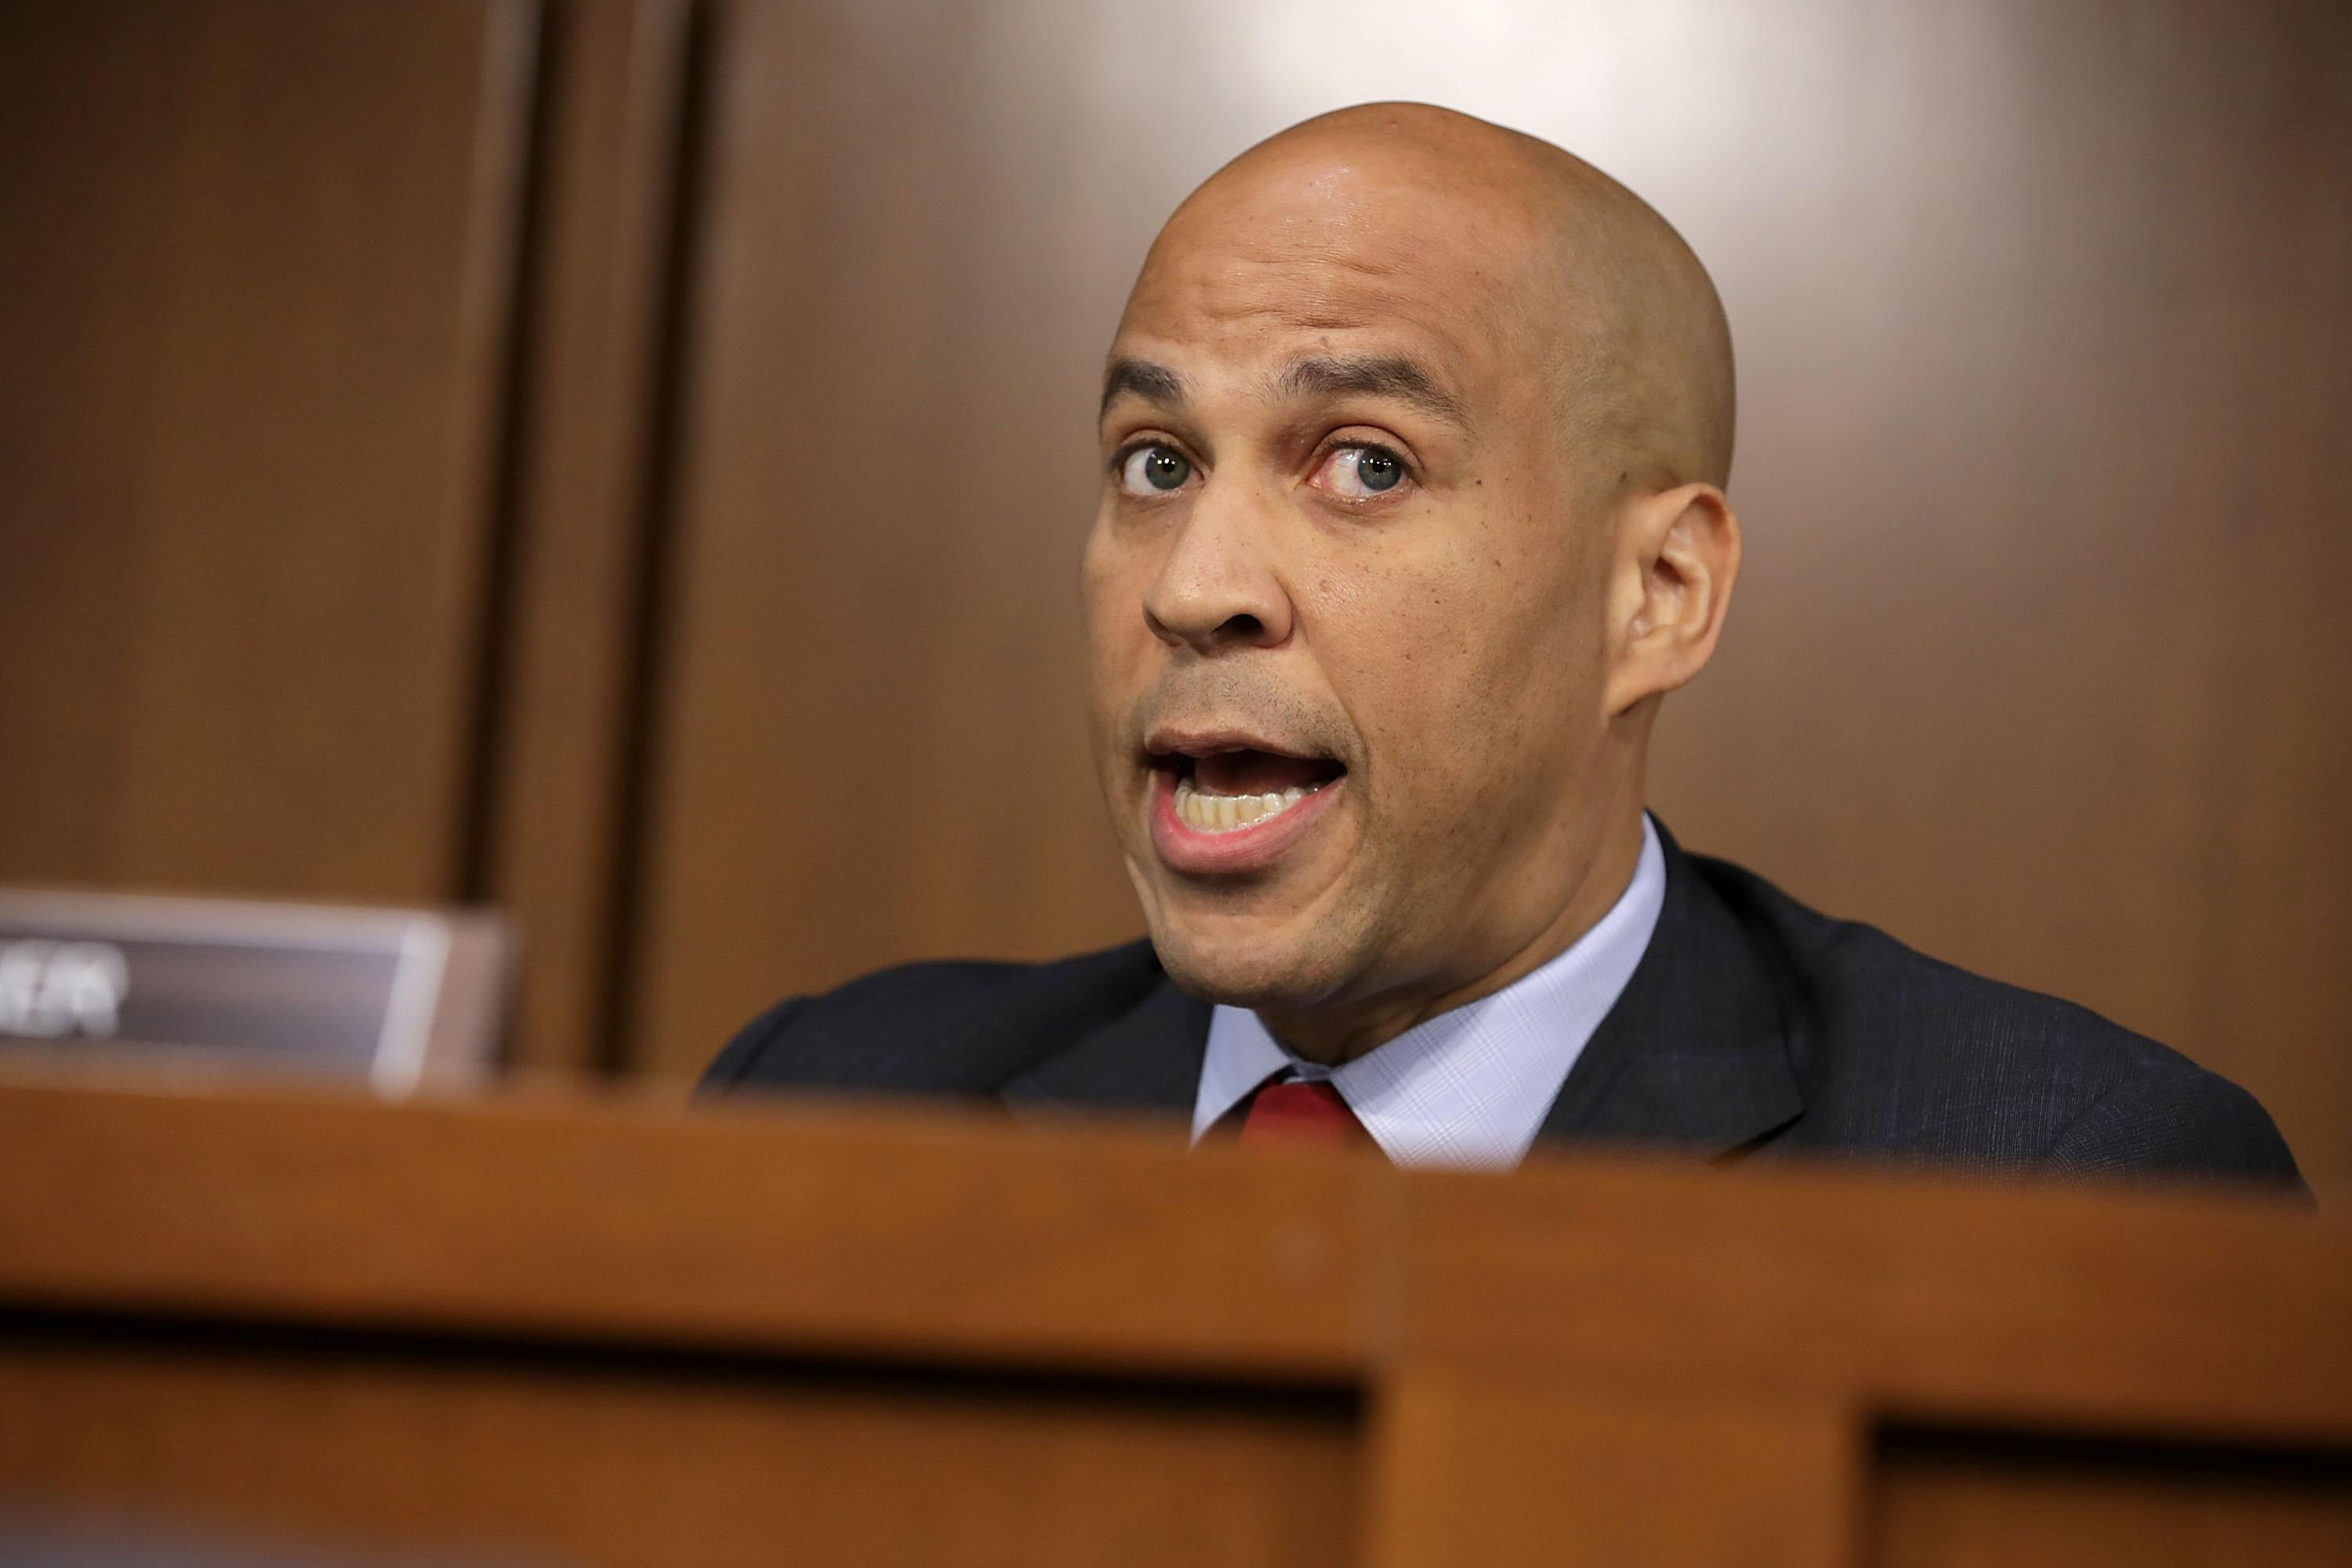 Senate Judiciary Committee member Cory Booker argues with Republican members of the committee during the third day of Supreme Court nominee Judge Brett Kavanaugh's confirmation hearing.